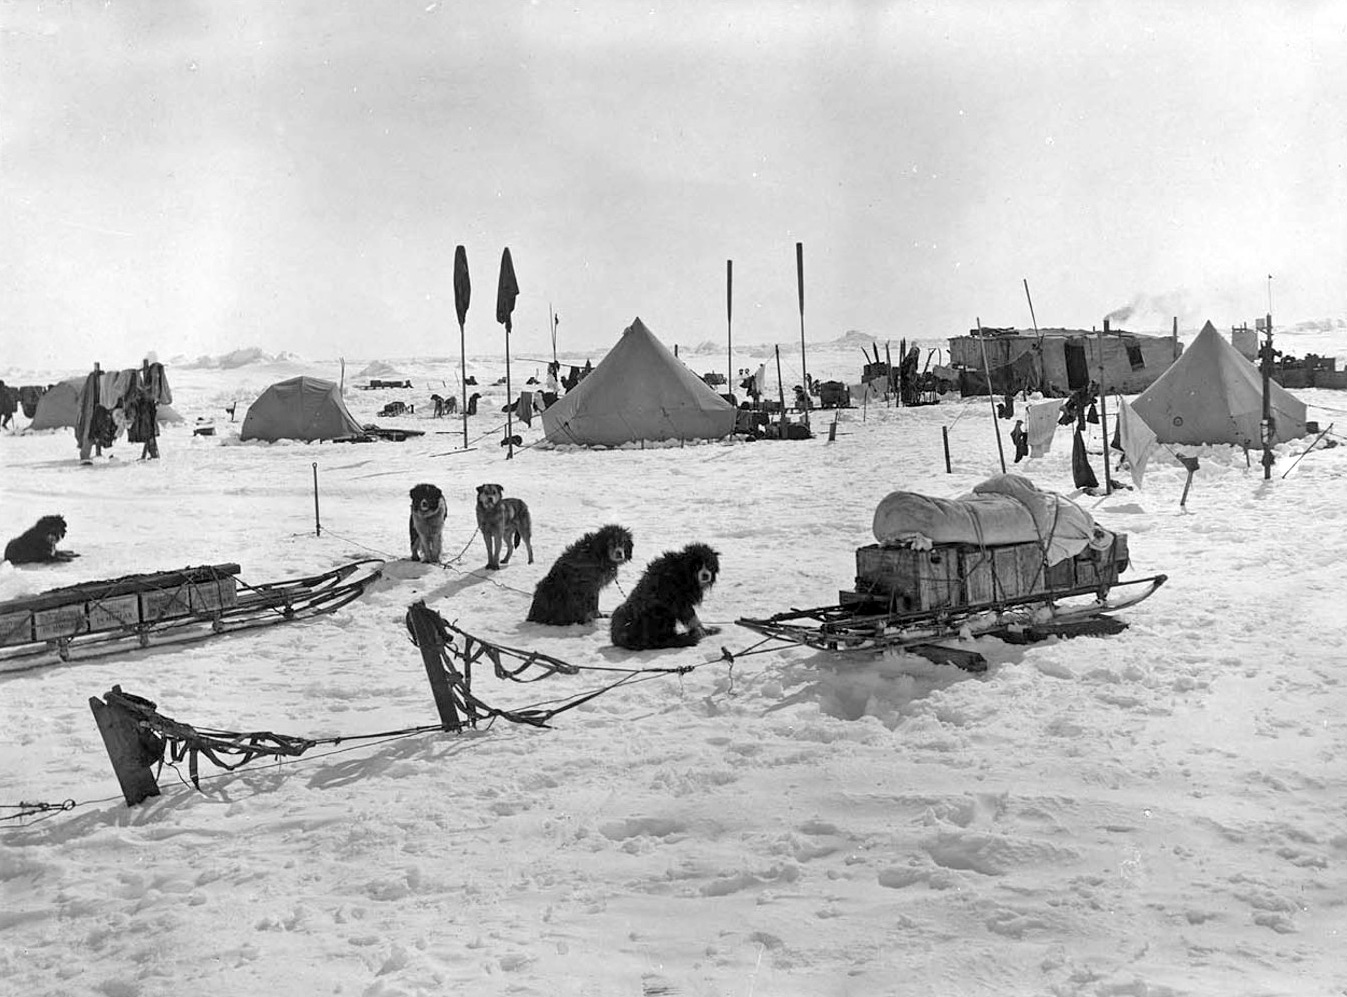 Arctic Expedition Tents